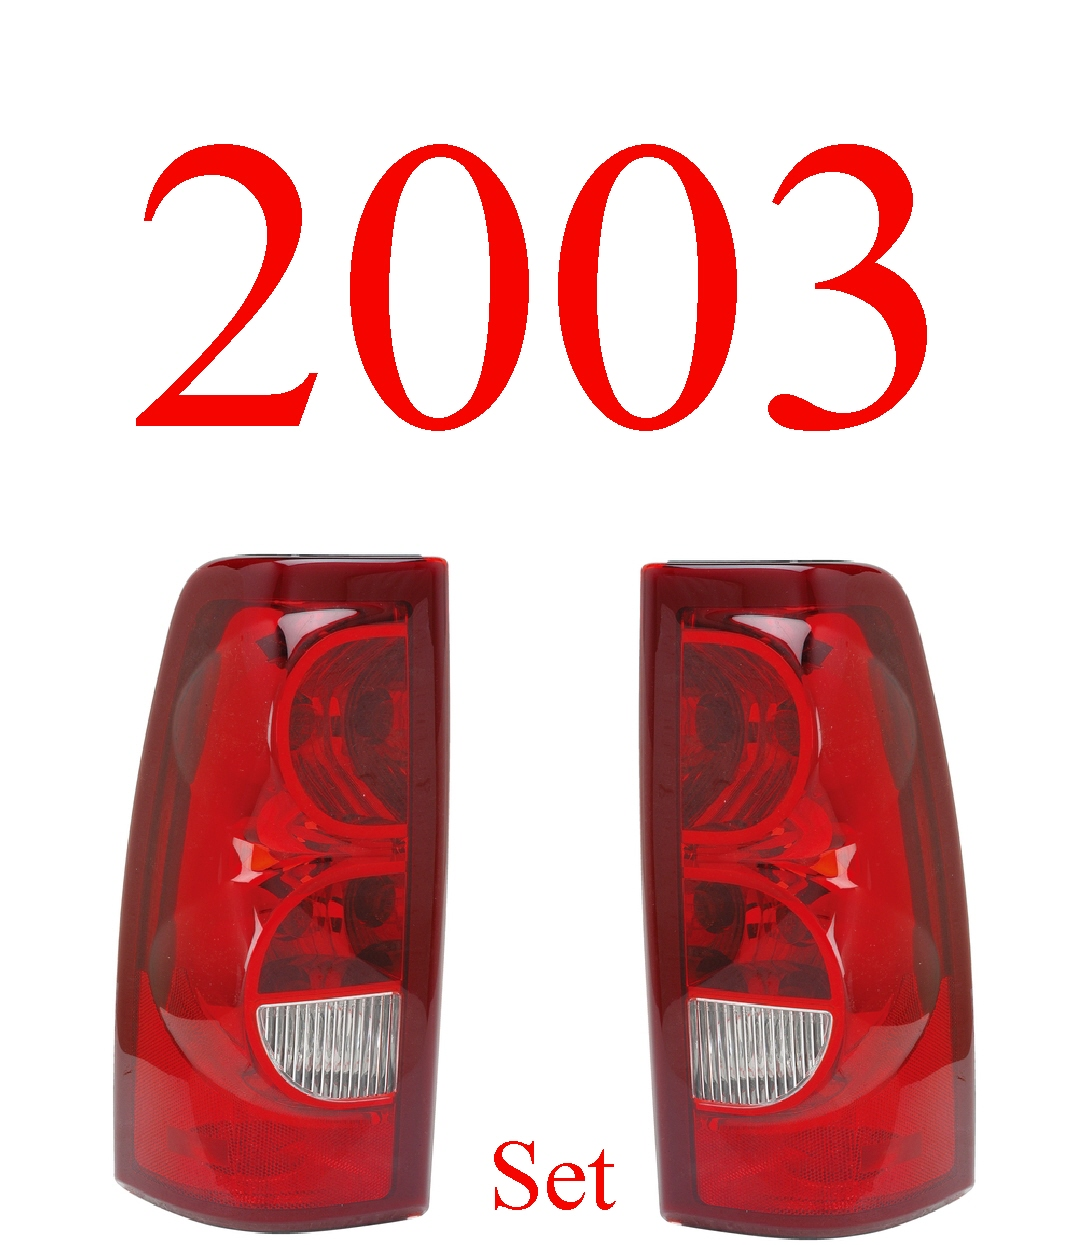 03 Chevy Tail Light Set, Silverado